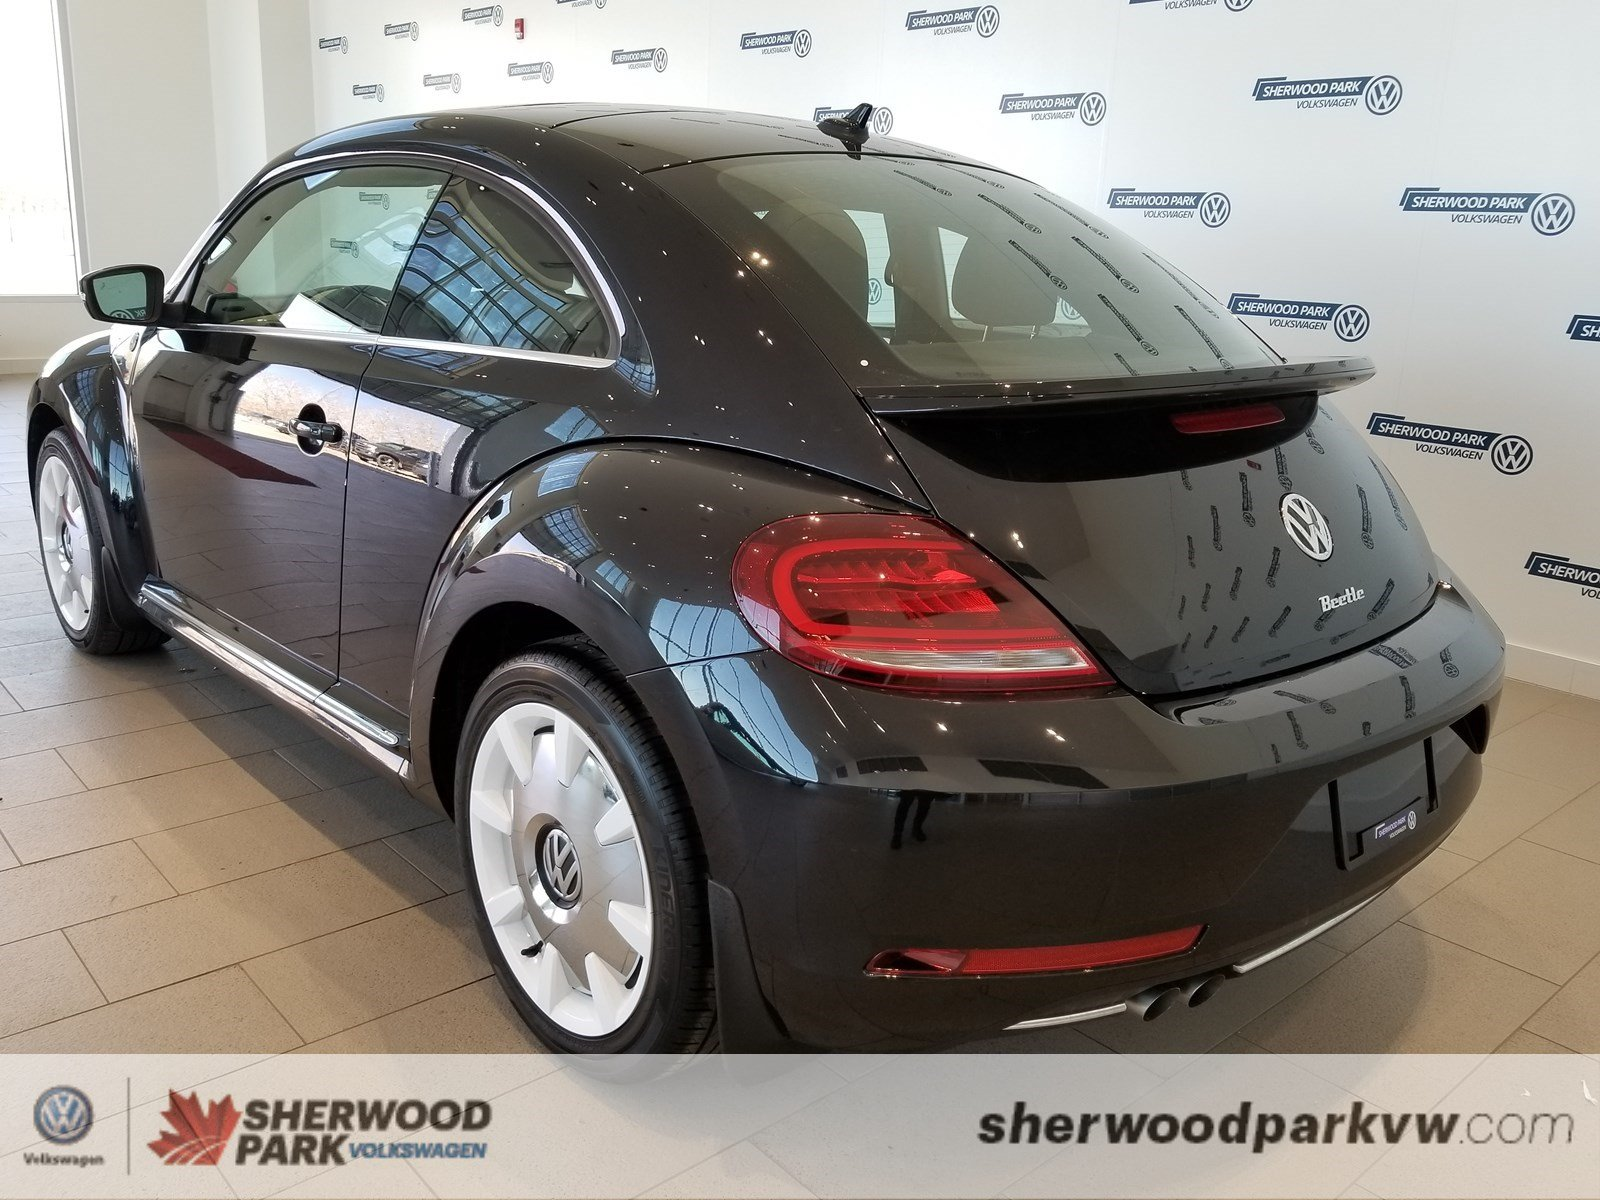 NEW 2019 VOLKSWAGEN BEETLE WOLFSBURG EDITION FWD HATCHBACK